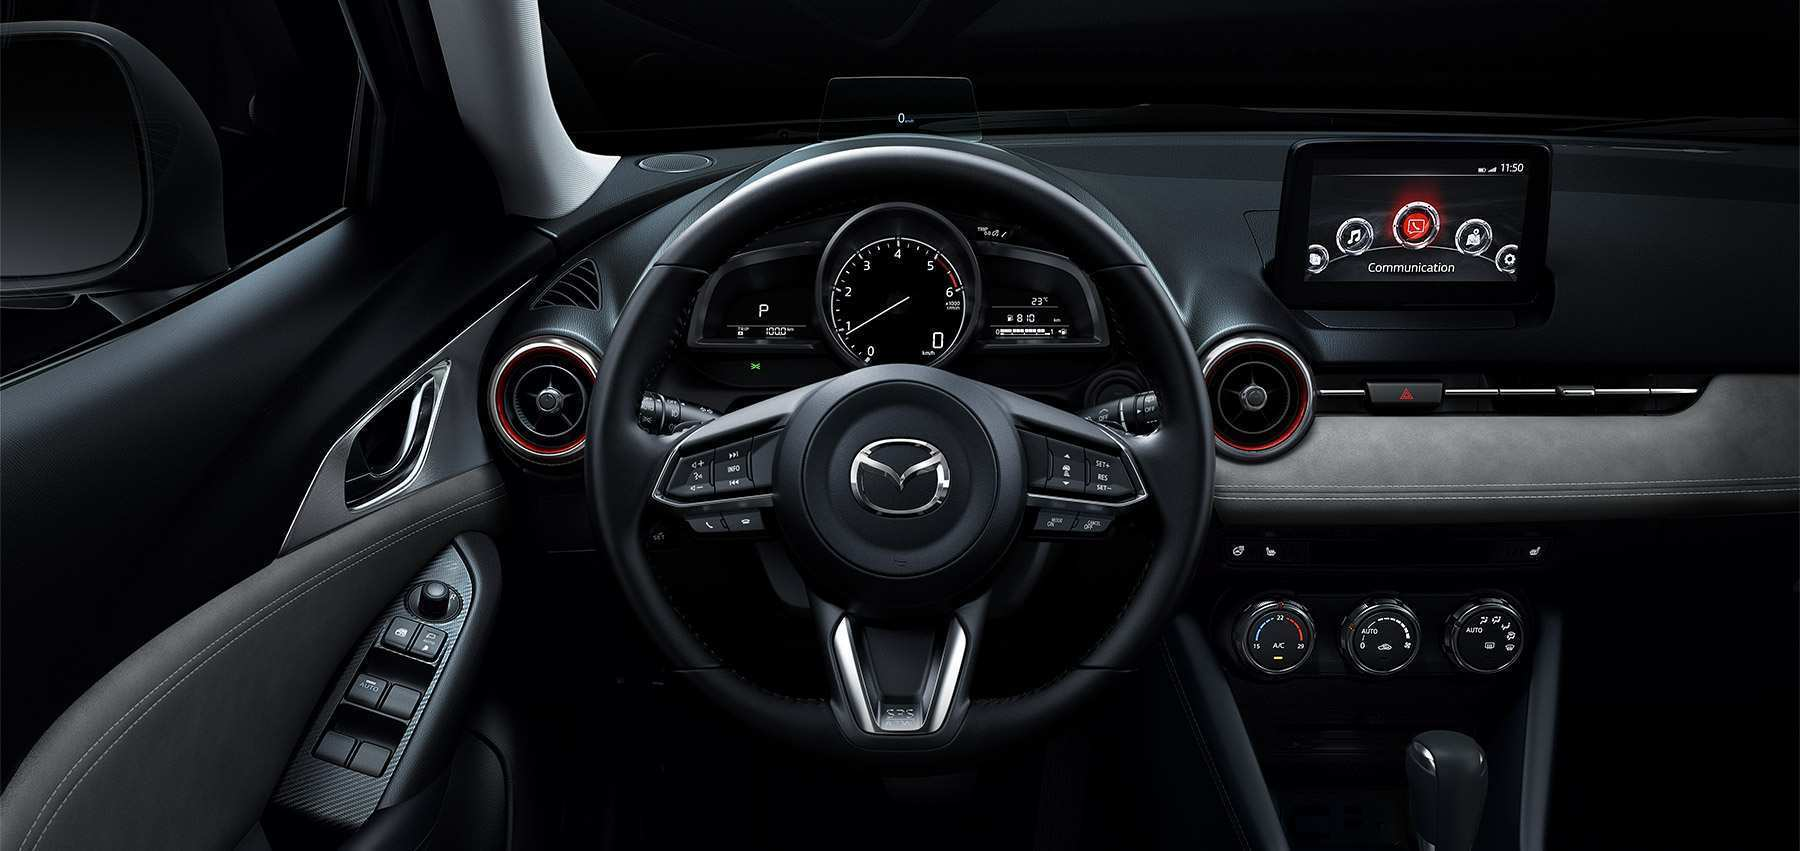 91 All New Xe Mazda 3 2019 Release Date